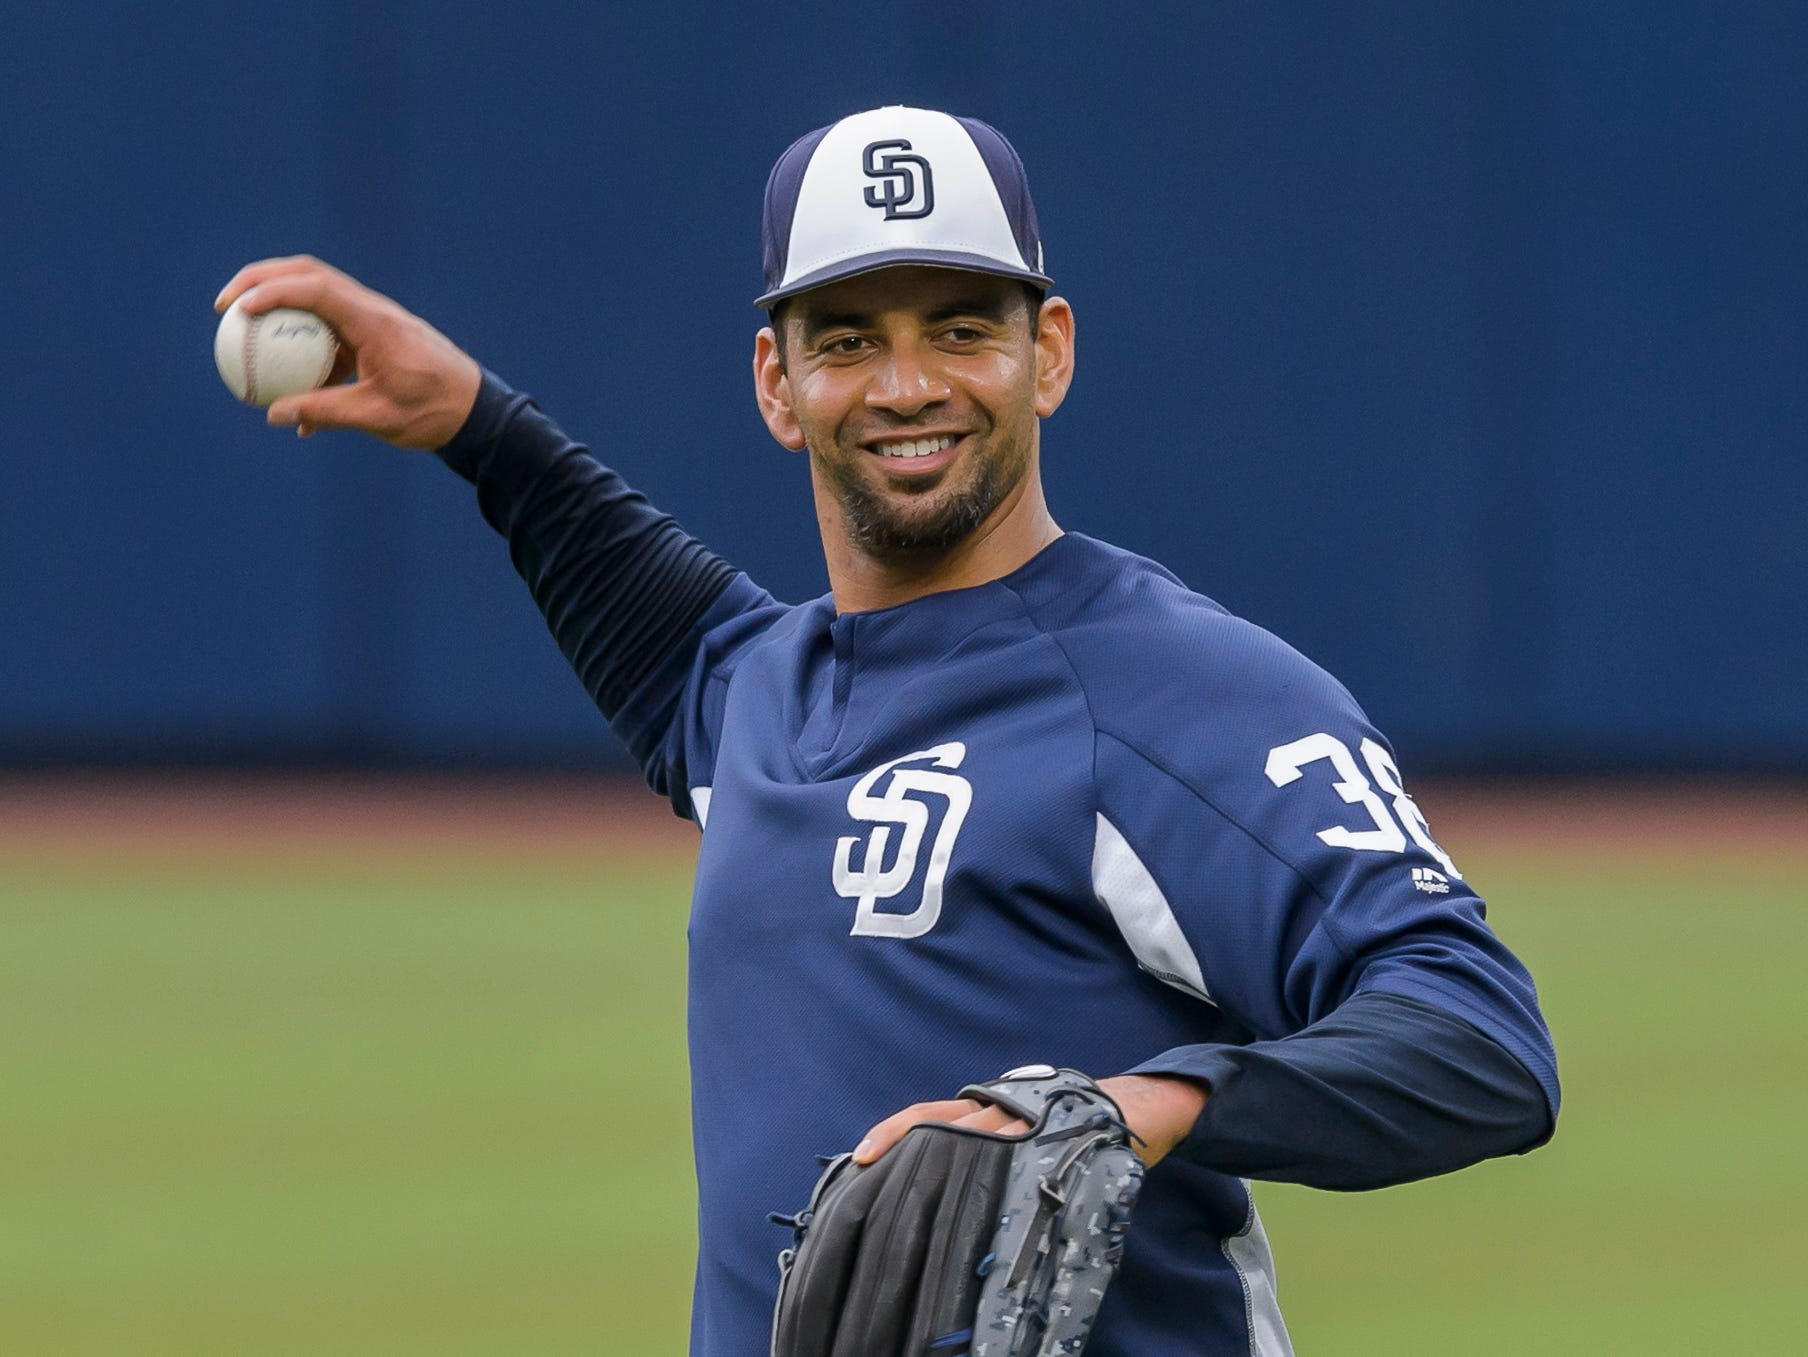 Starting pitcher Tyson Ross of San Diego Padres warms up prior a game against Los Angeles Dodgers on May 4, 2018 in Monterrey, Mexico.